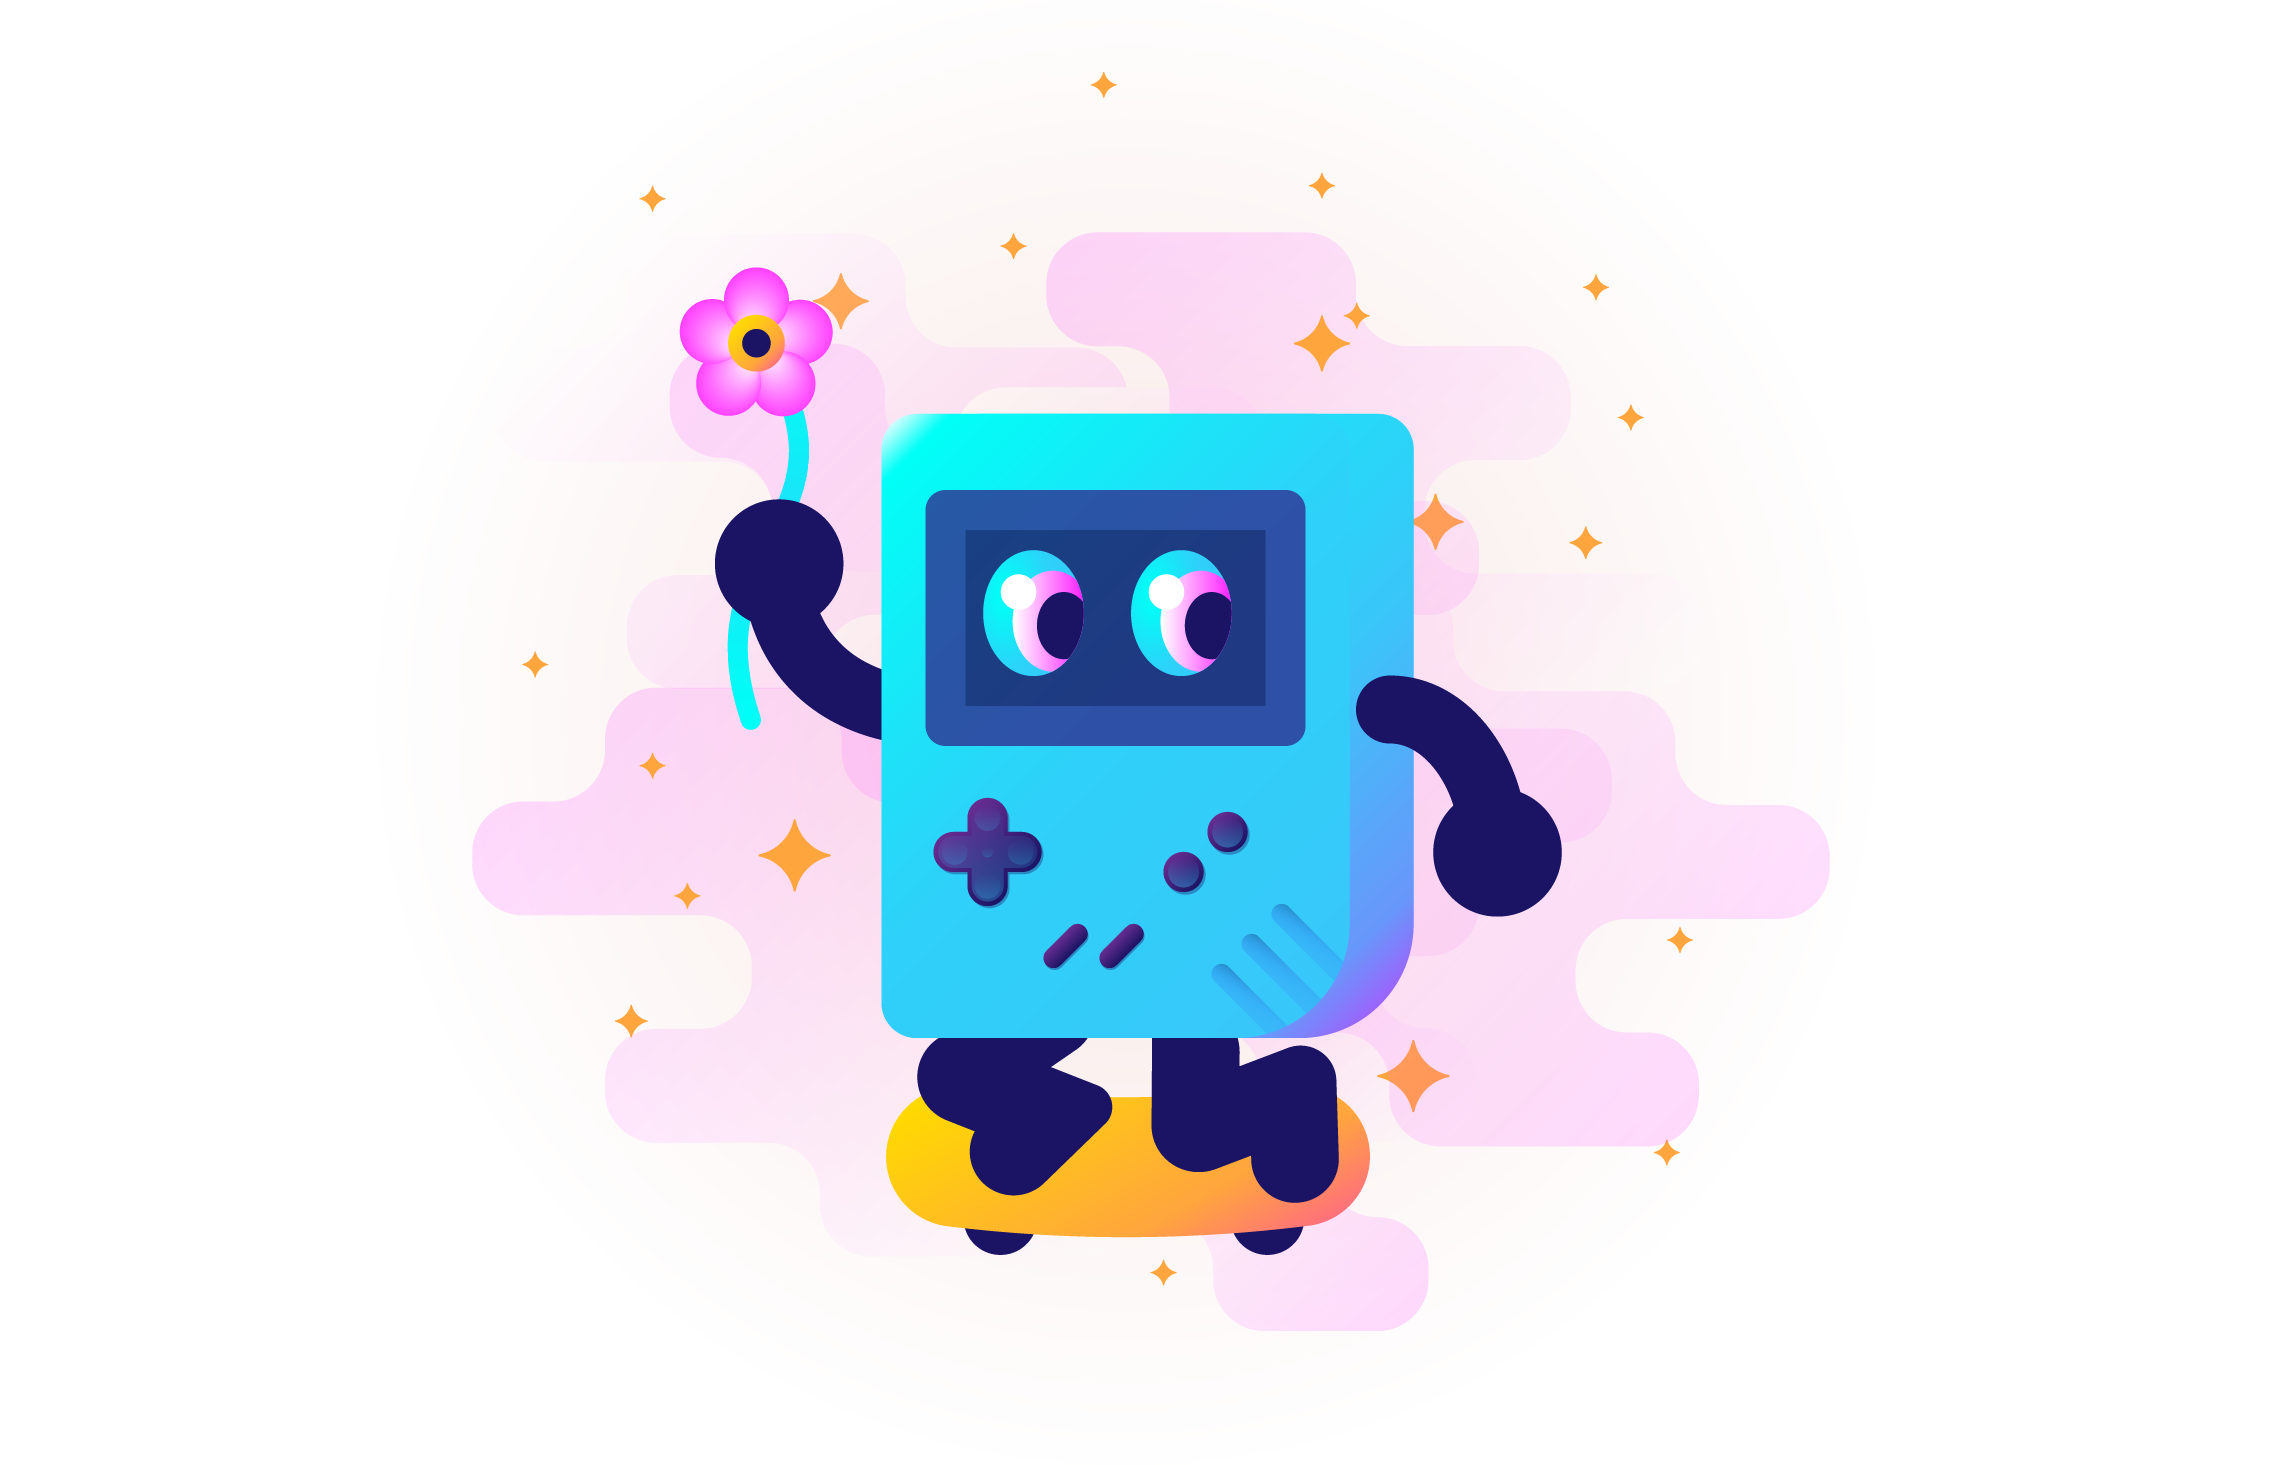 gameboy riding a skateboard and holding a flower